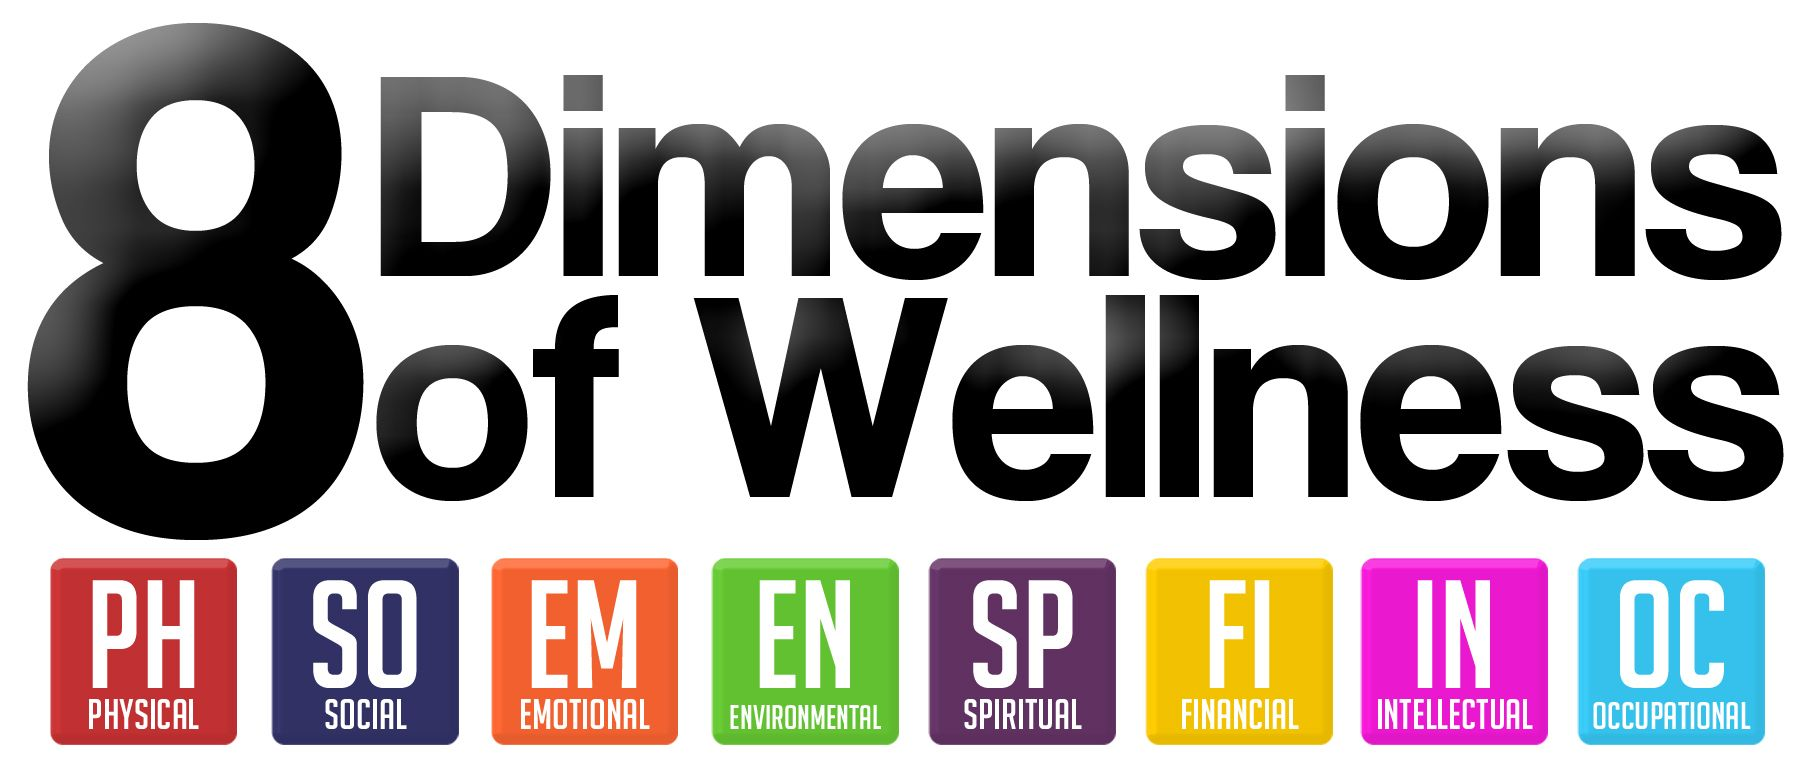 8 Dimensions Of Wellness A Modern Spin To The Original 6